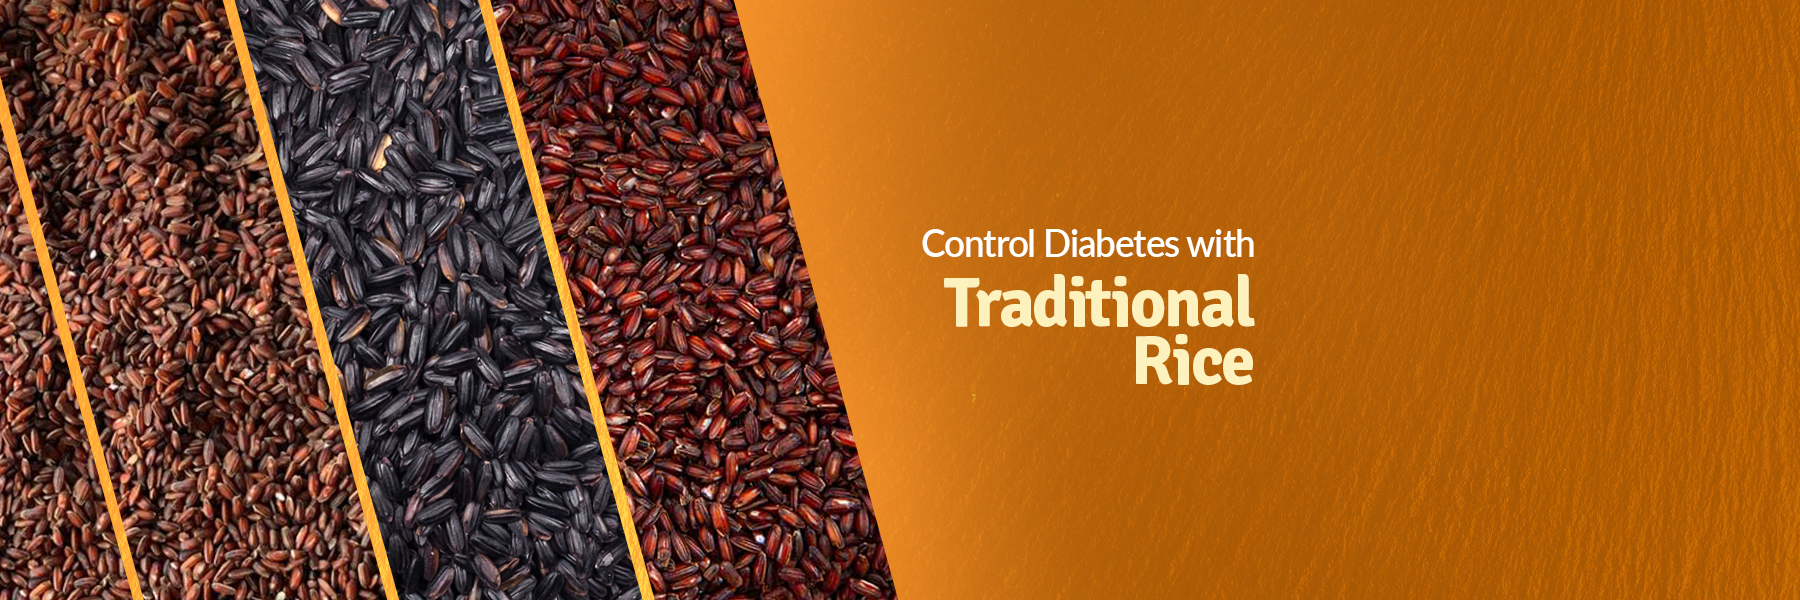 A Bowl of traditional rice controls diabetes